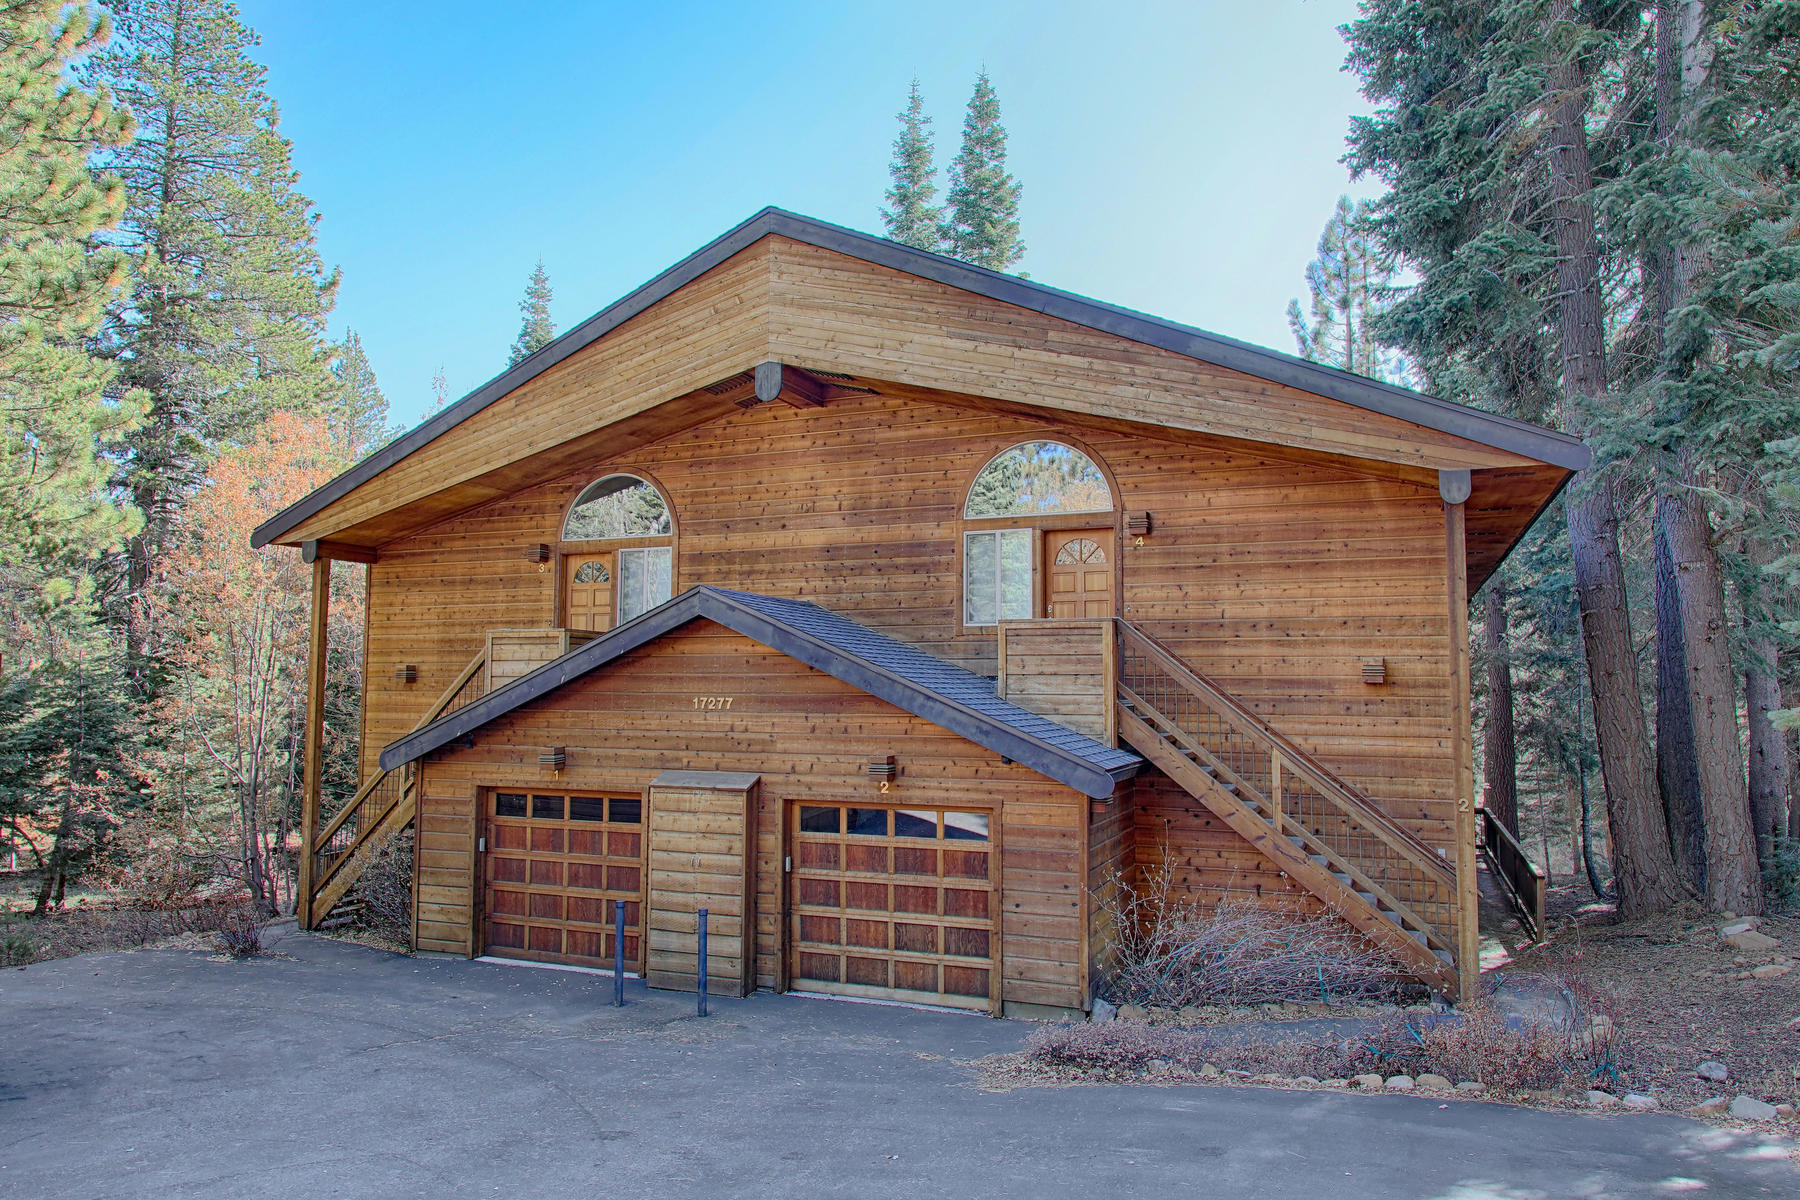 townhouses for Active at 17277 Northwoods Boulevard, # 1 Truckee California 96161 17277 Northwoods Blvd, #1 Truckee, California 96161 United States